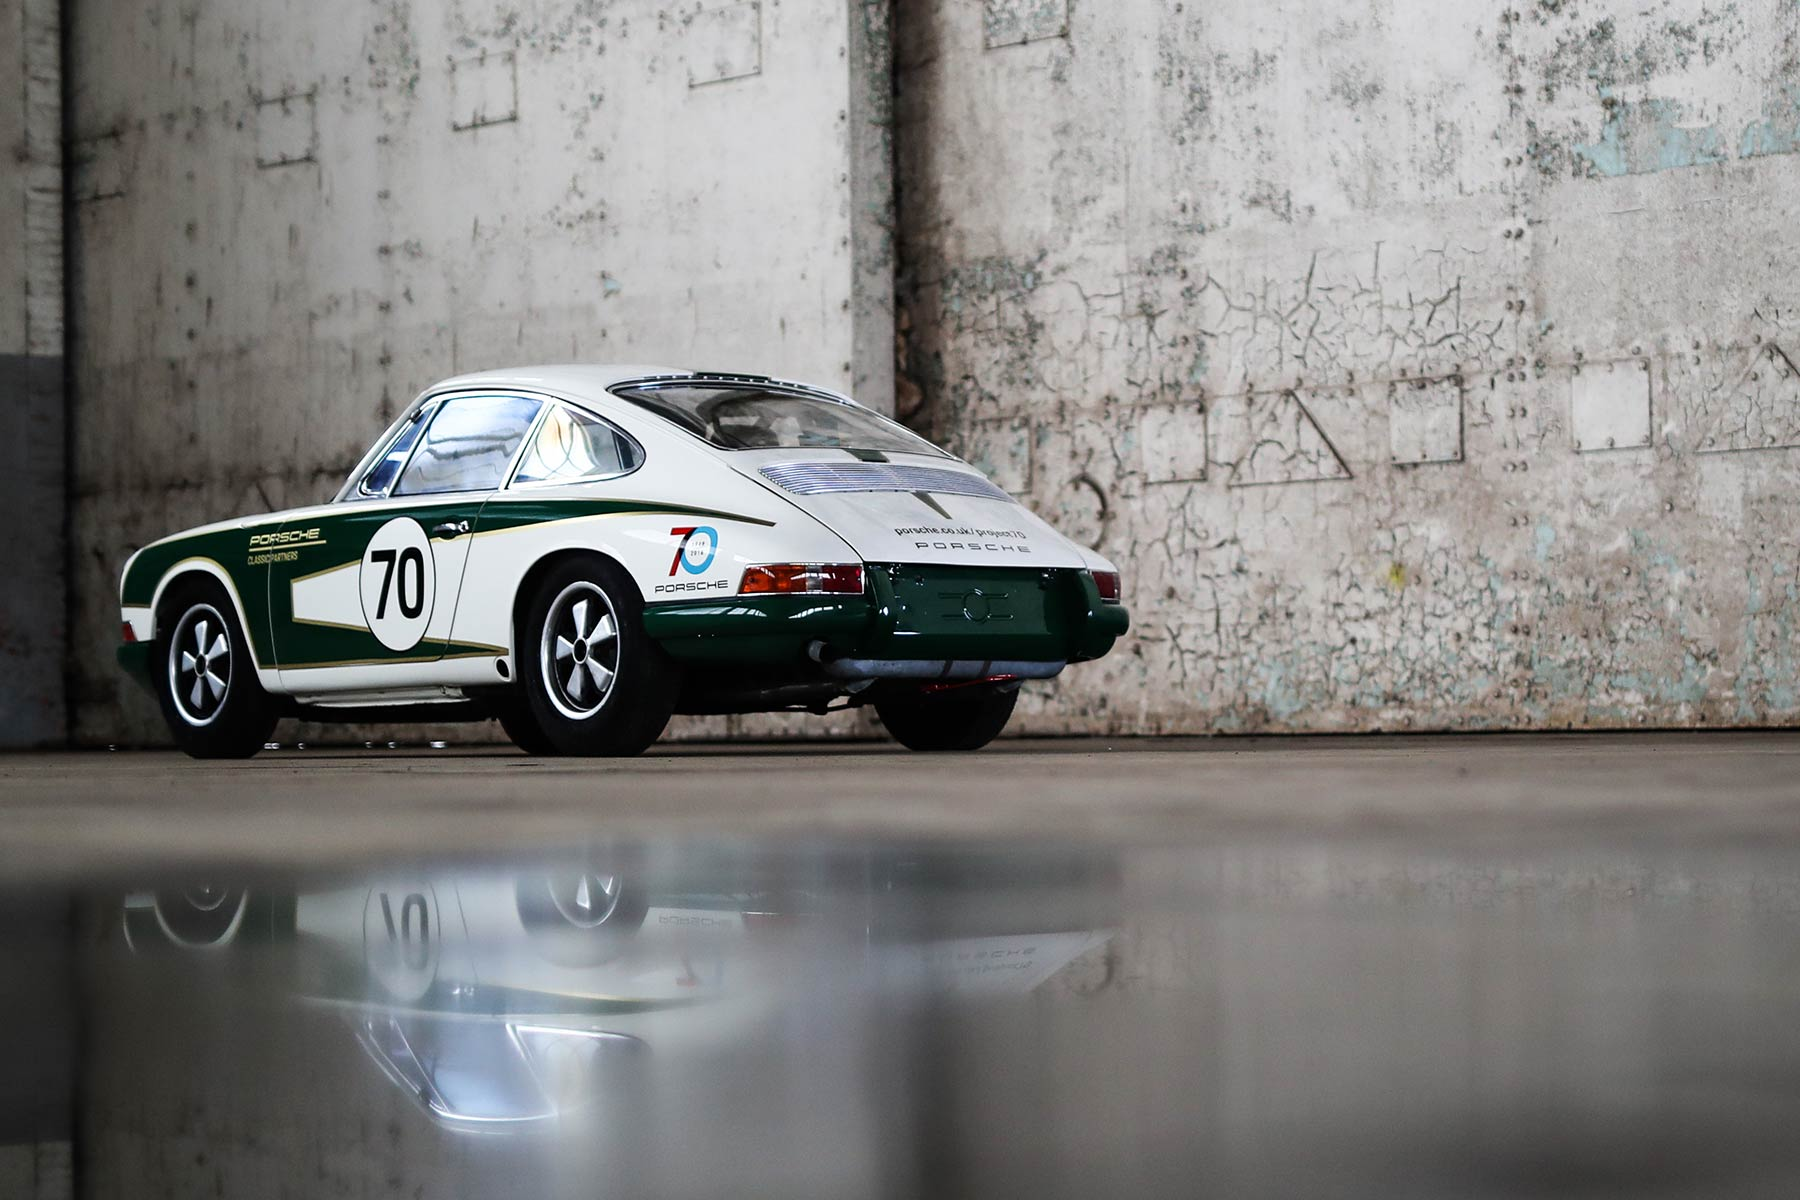 Porsche Classic GB 911 race car